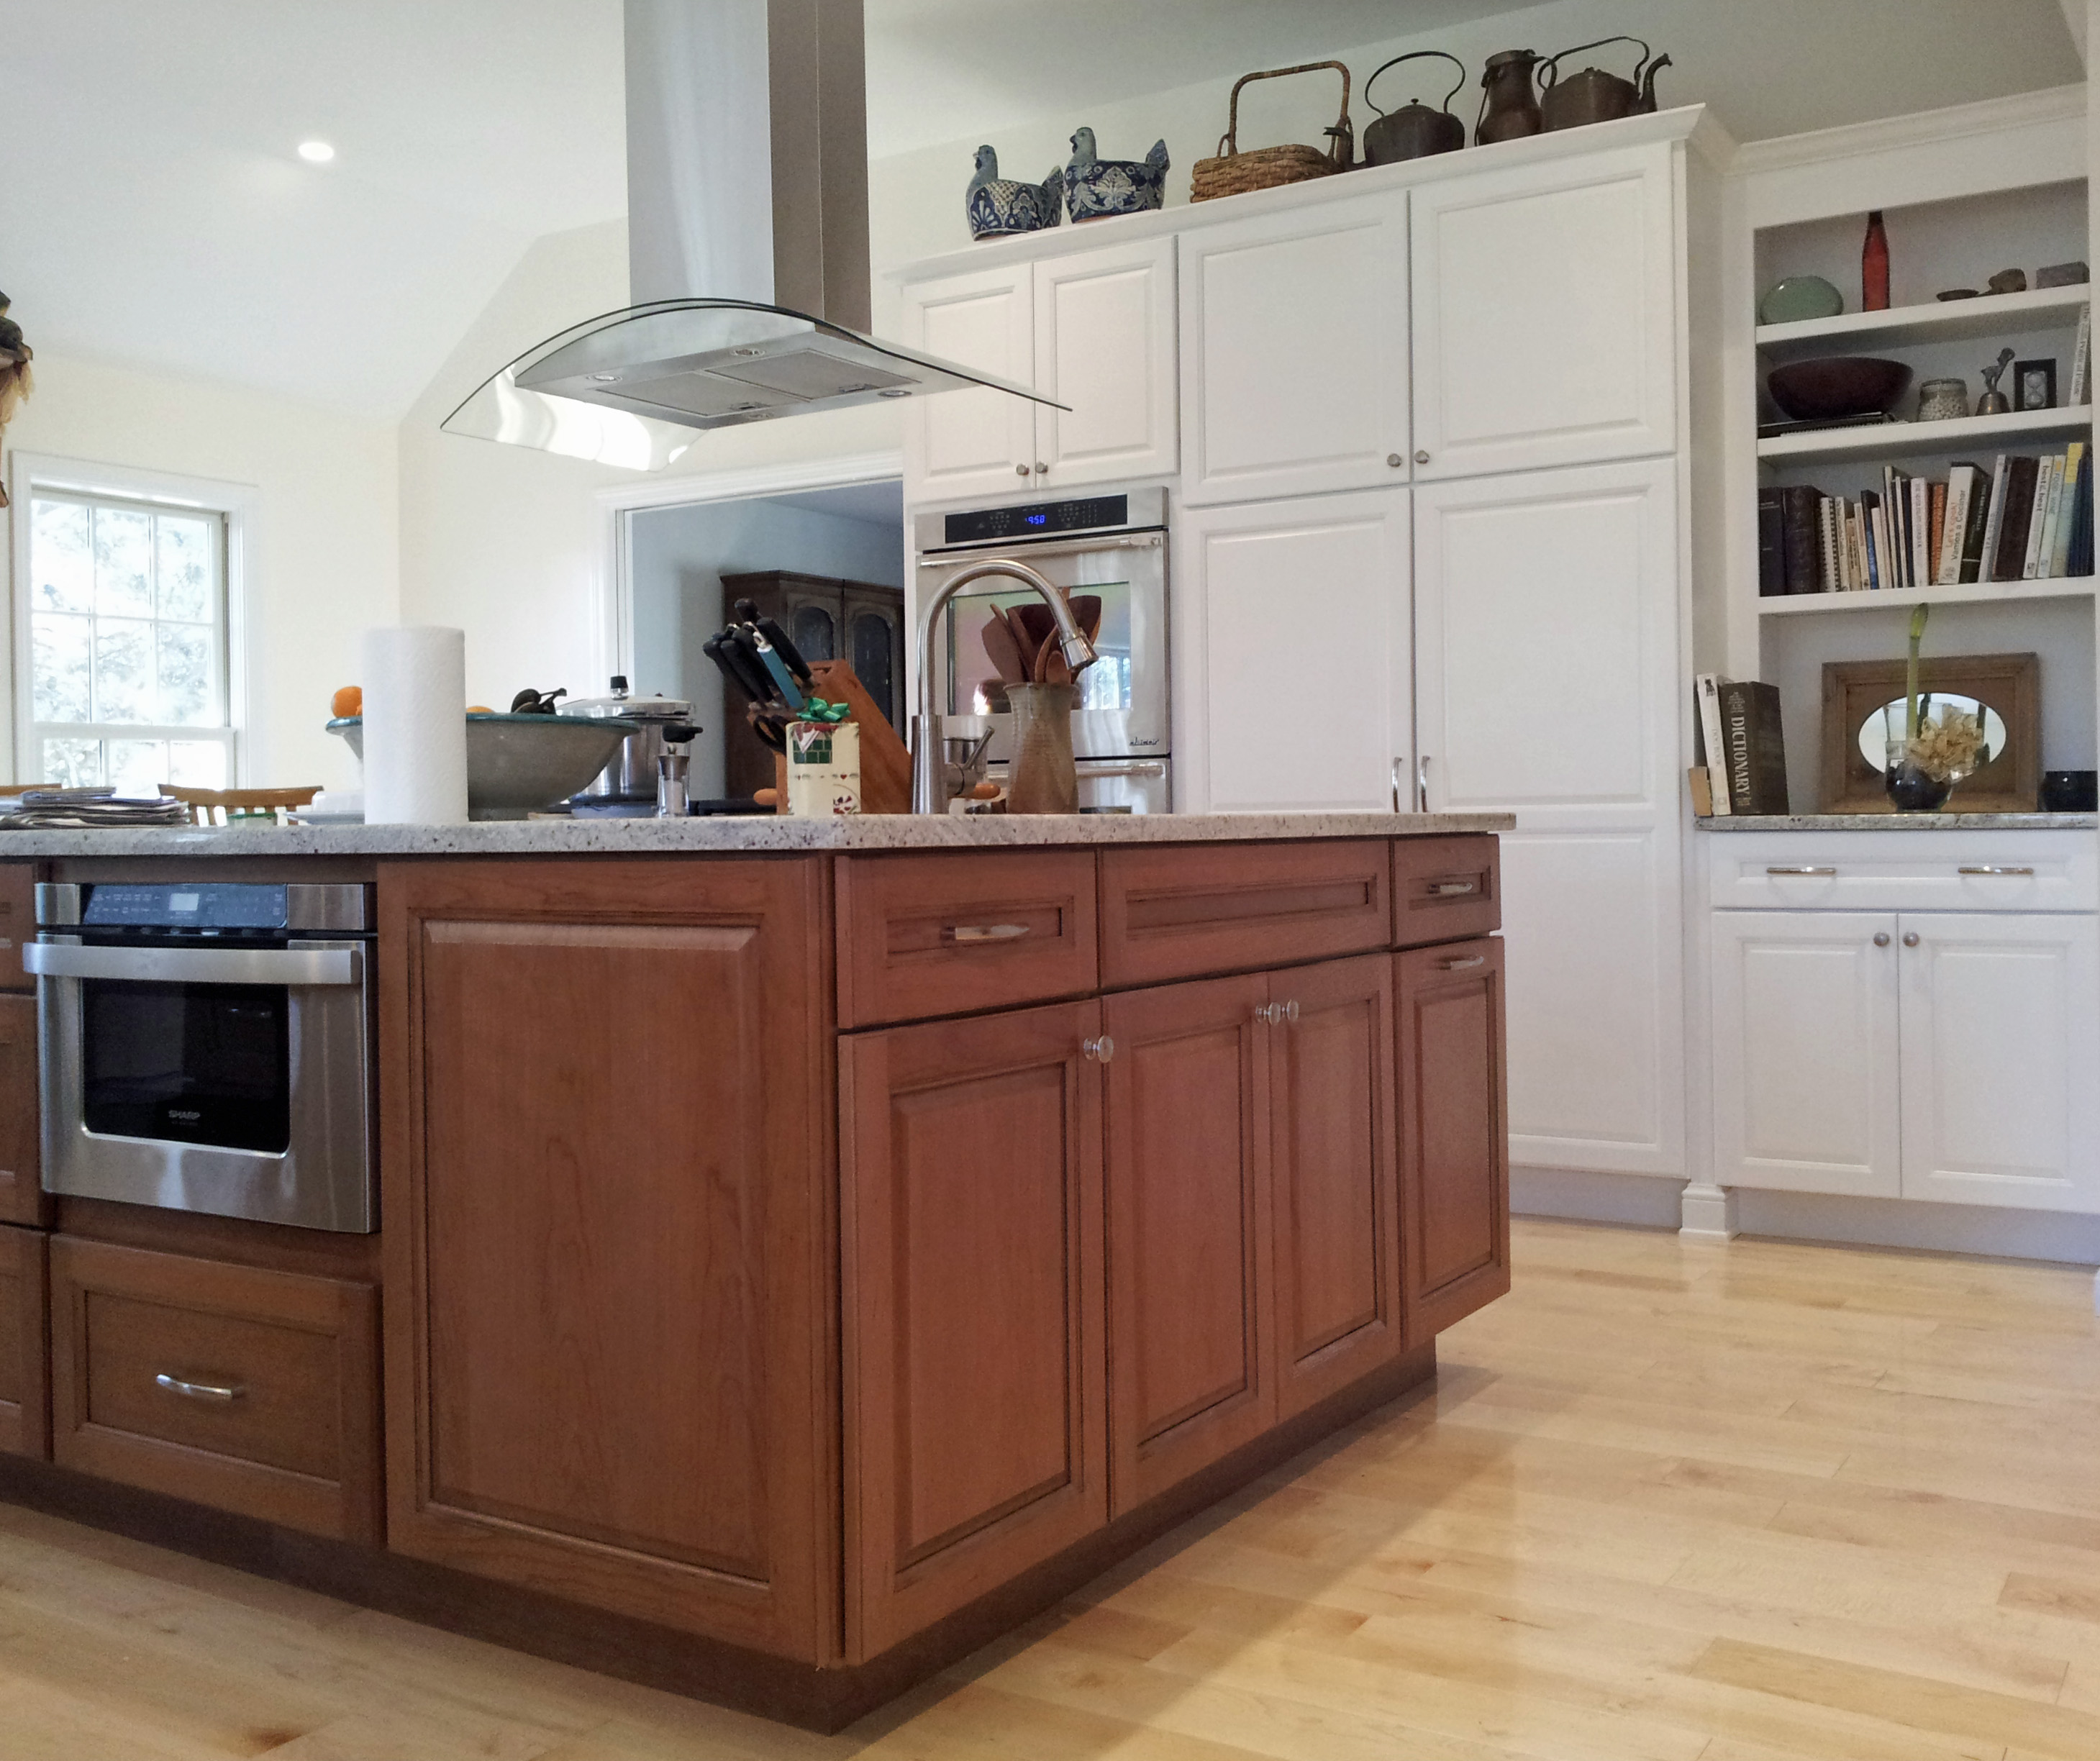 ... Beautiful Stained Full Overlay Island Cabinetry Mixed With Painted  Perimeter Cabinetry ...